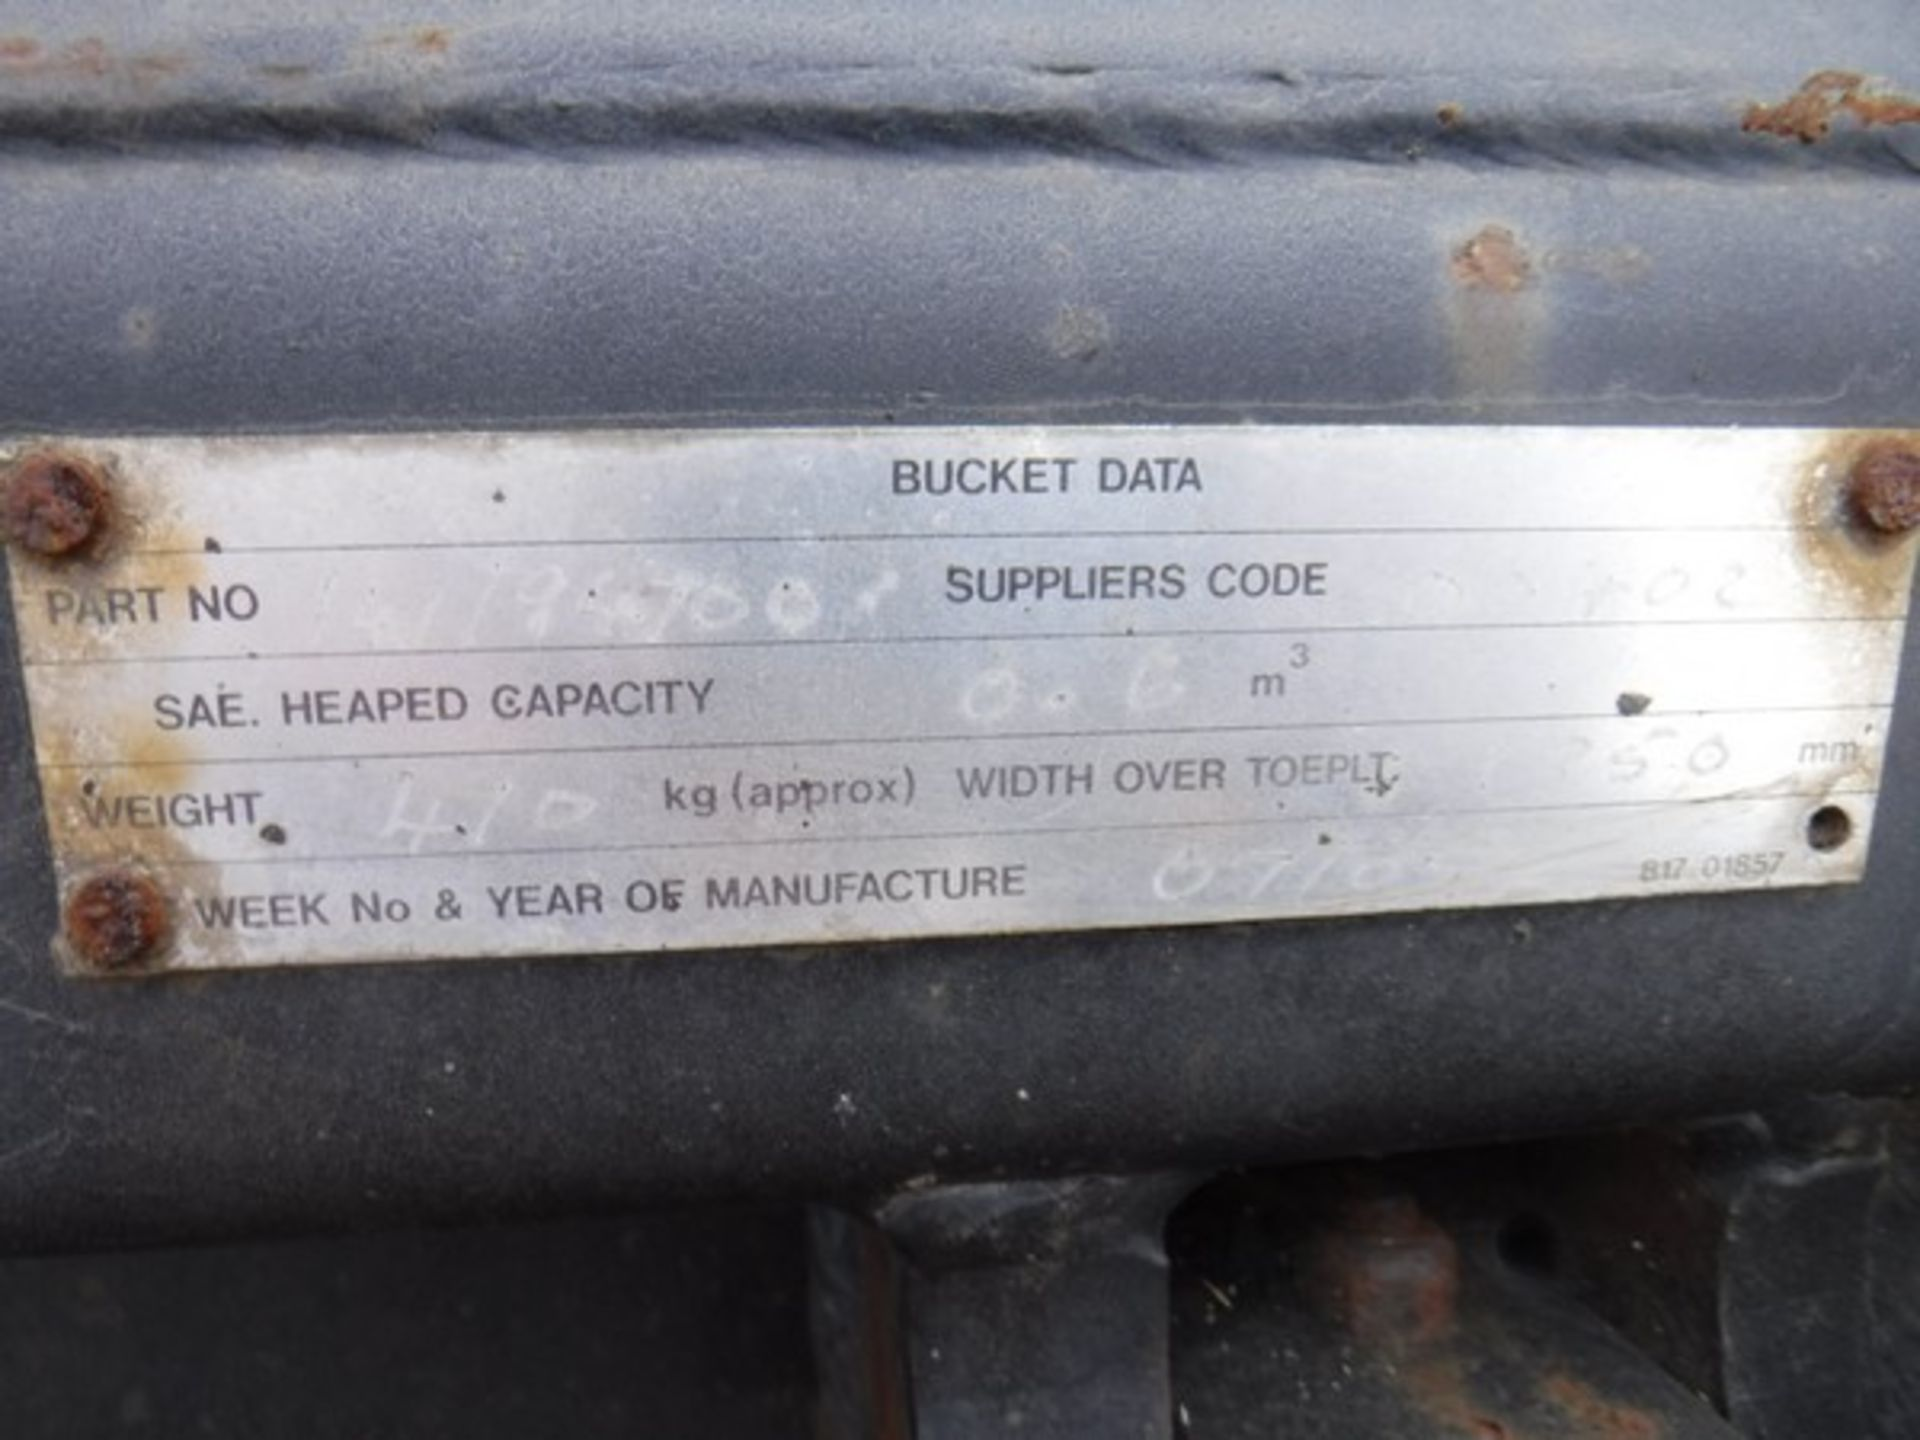 Auktionslos 252 - 4 in 1 bucket for JCB 2CX